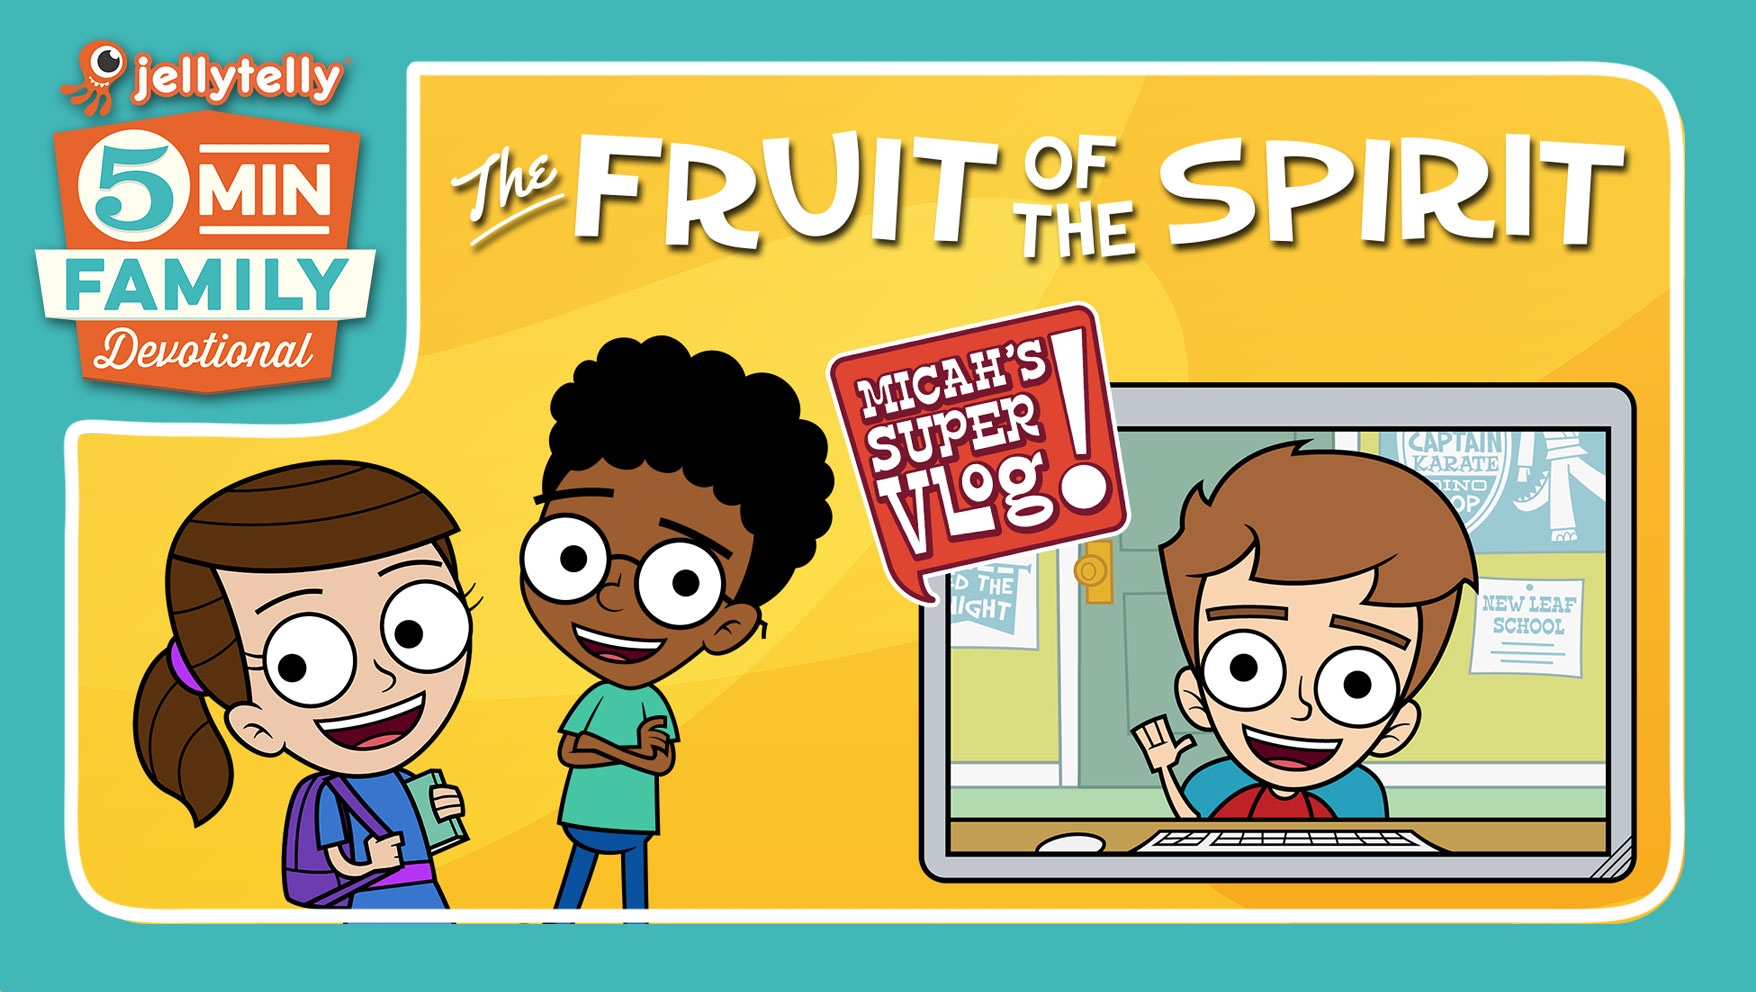 The Fruit of the Spirit - A New 5 Minute Family Devotional Plan